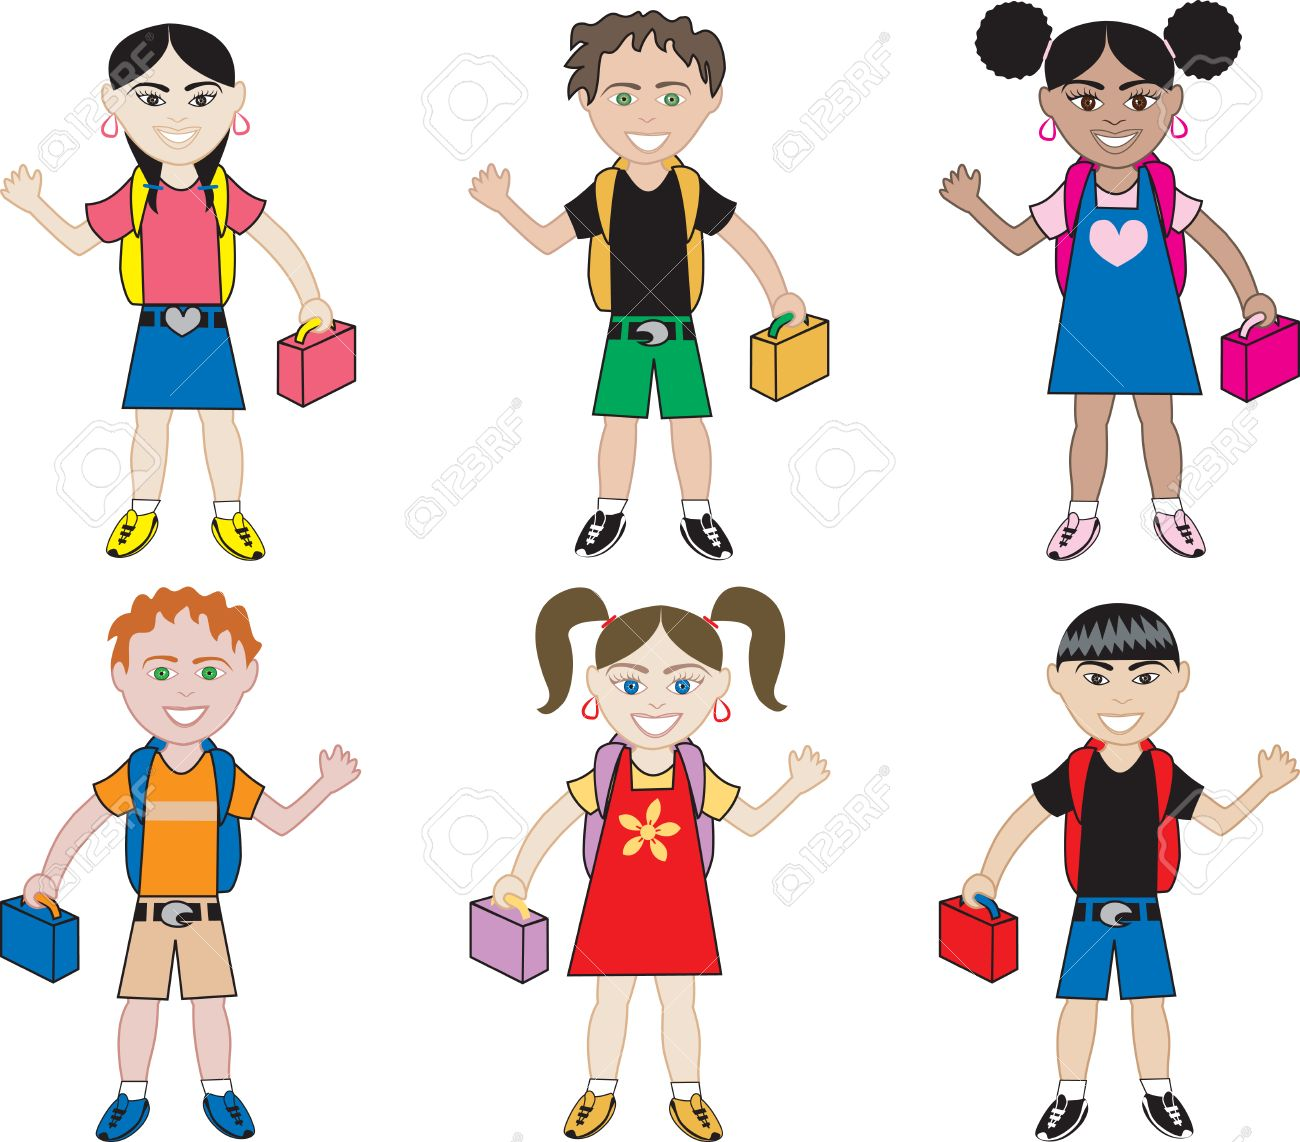 Little Kids of all races ready for school with their backpacks on. Stock Vector - 5330144